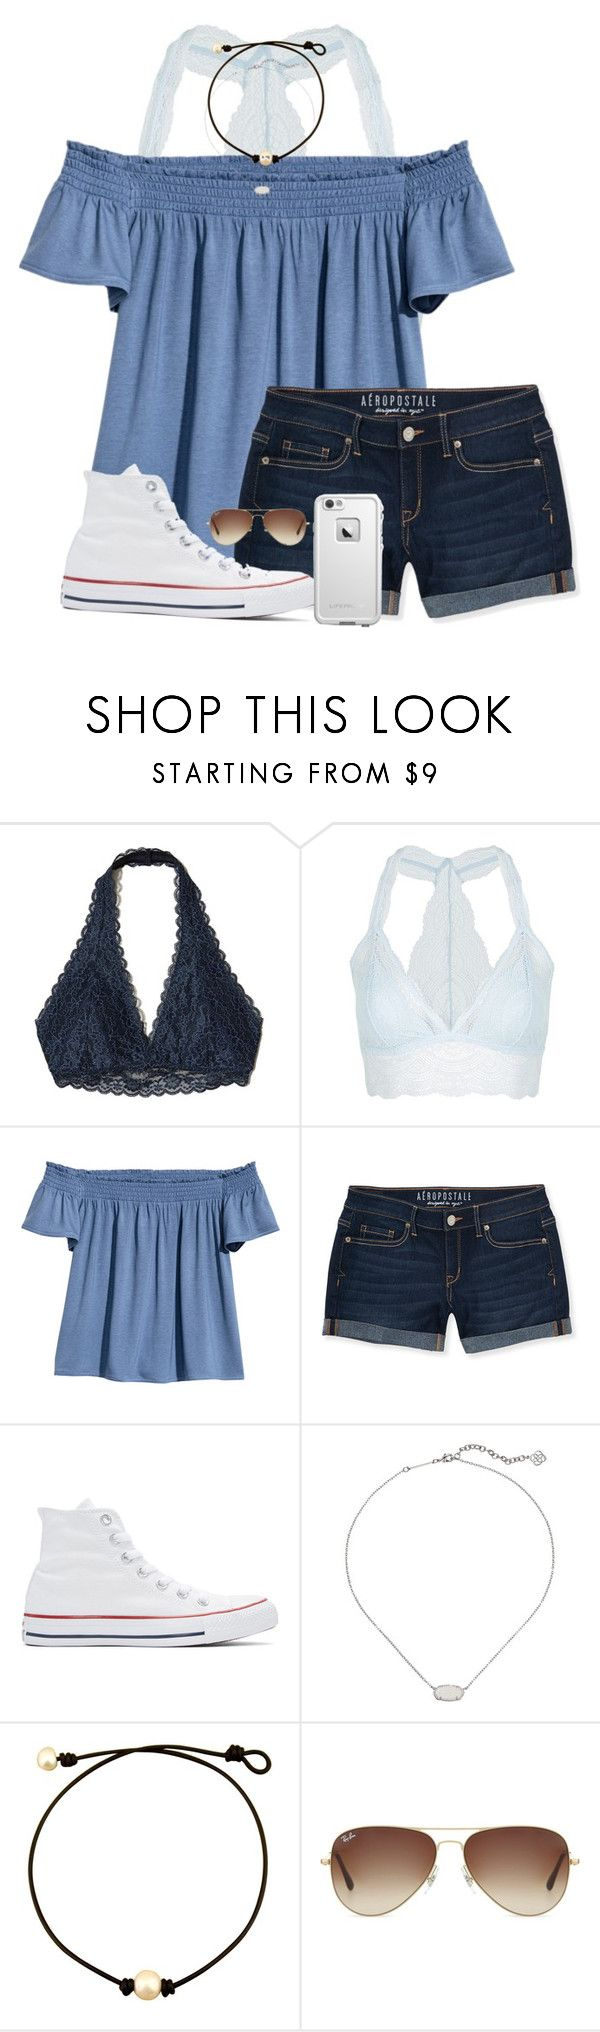 """it's so hot in South Carolina☀️☀️"" by penguinfan911 ❤ liked on Polyvore featuring Hollister Co., Topshop, H&M, Aéropostale, Converse, Kendra Scott, Ray-Ban and LifeProof"